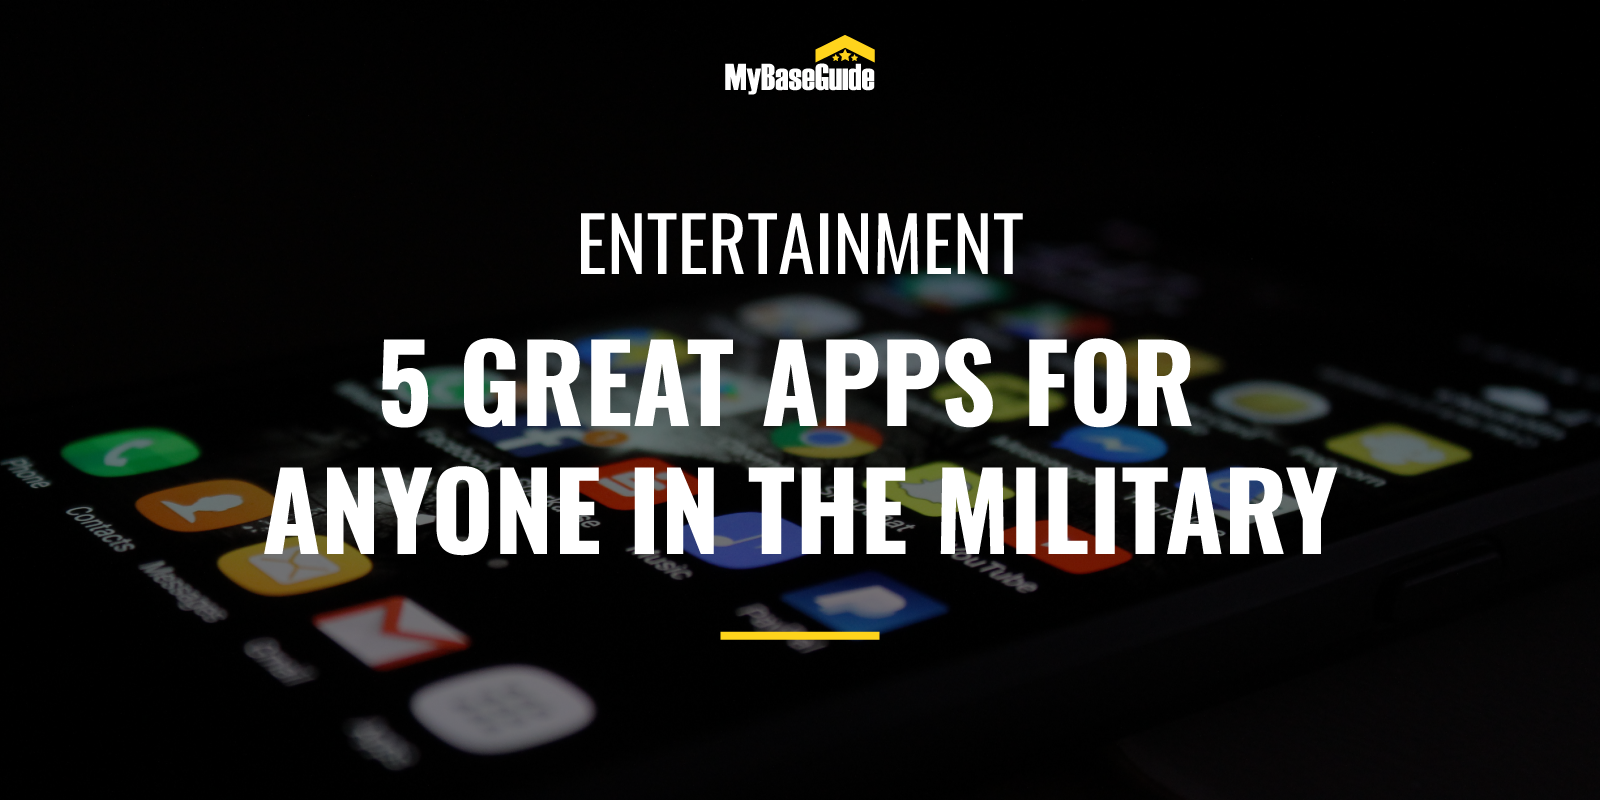 5 Great Apps for Military Members